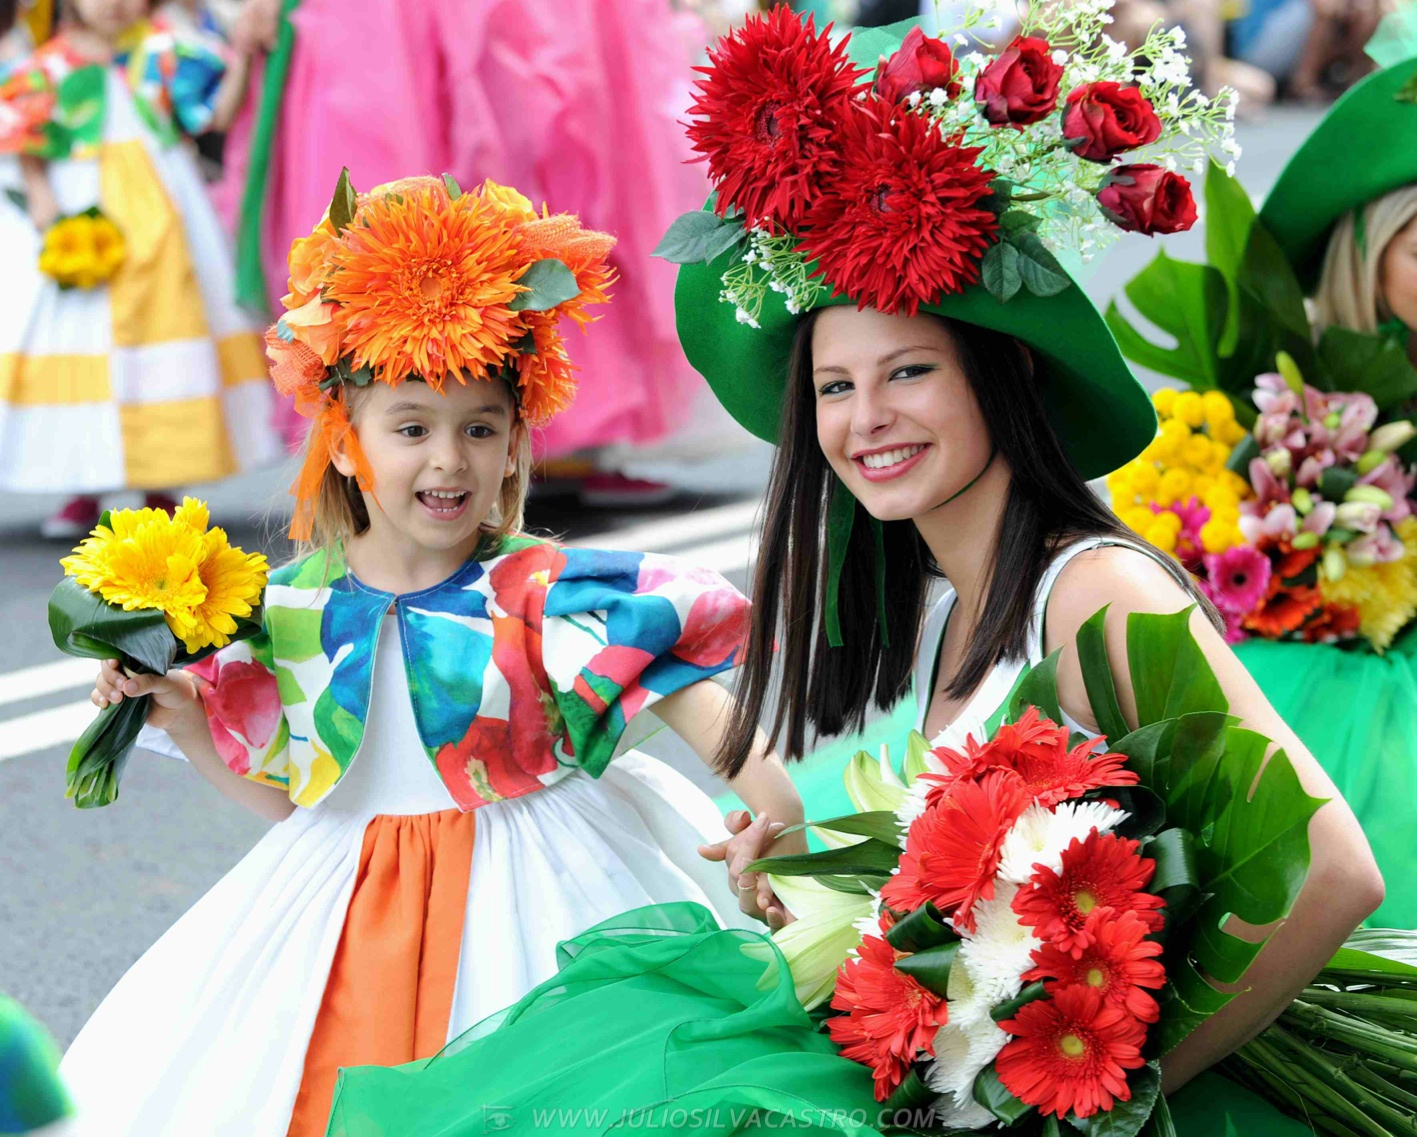 Pictures From Madeira Flower Festival 3